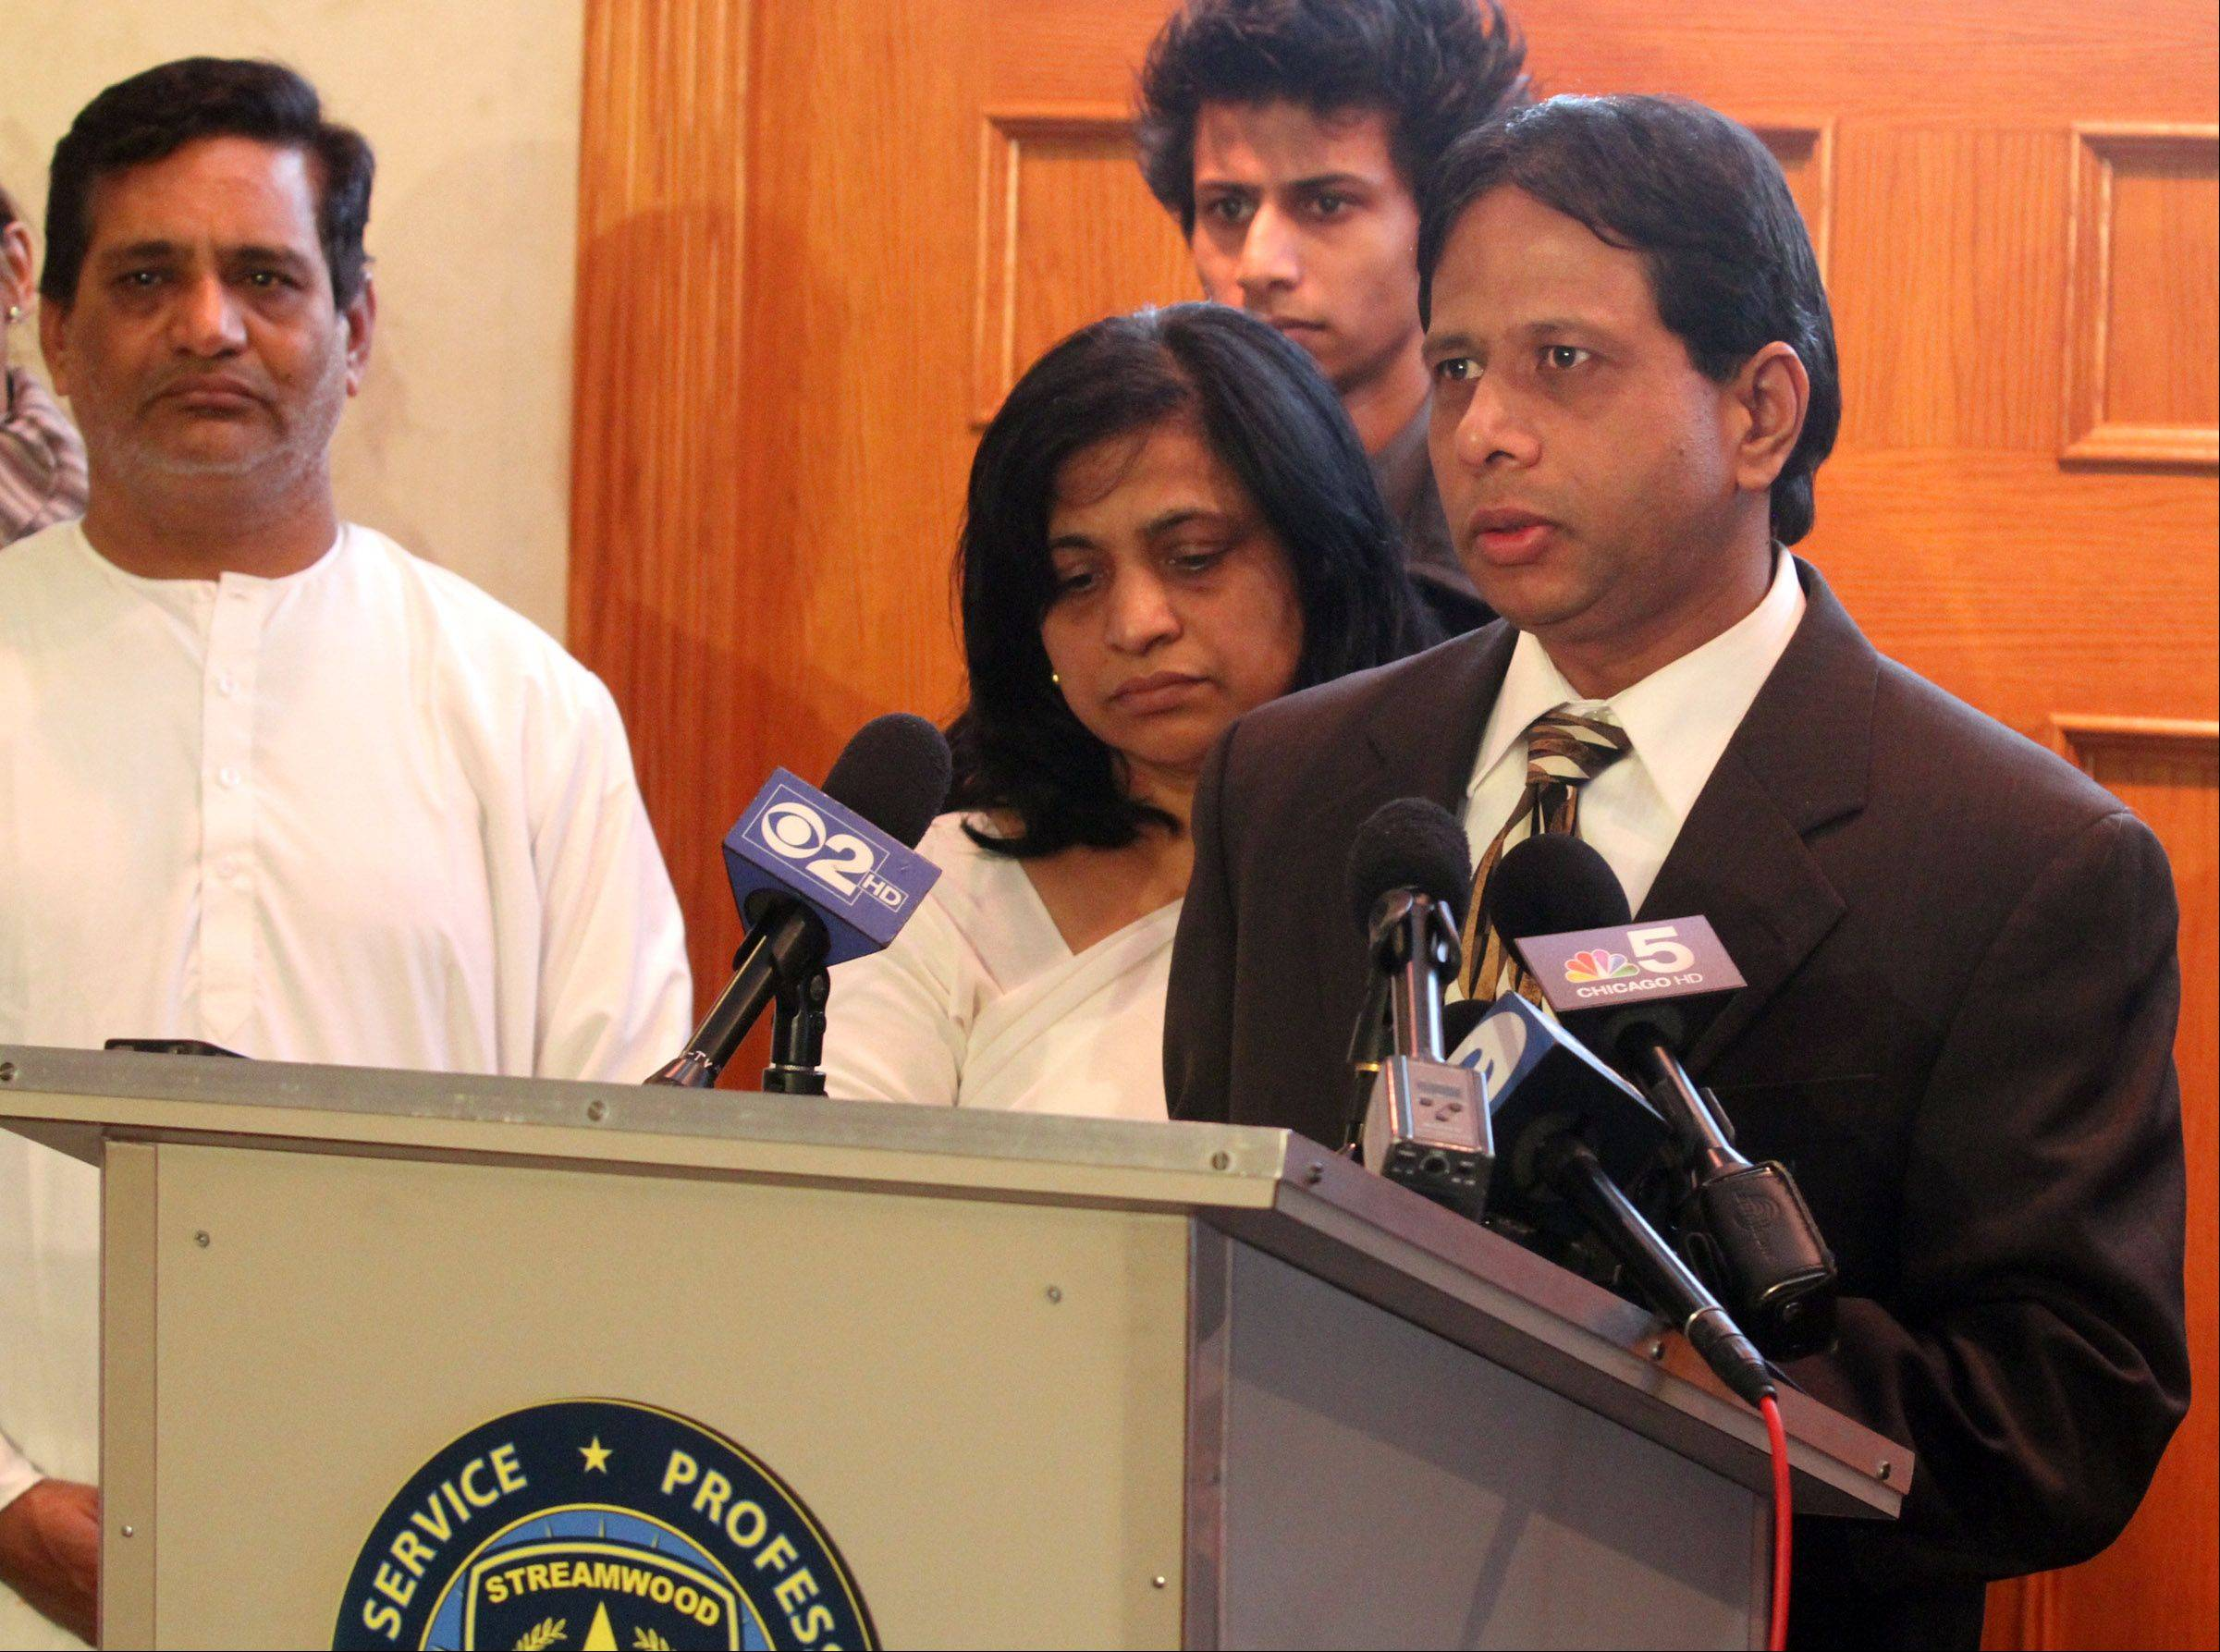 Ashwin Jaiswal, a relative of Anandkumar Jaiswal, speaks during a news conference yesterday at Countryside Funeral Home in Bartlett. Streamwood Police announced an increase to $25,000 for the reward for information leading to a conviction. Anandkumar Jaiswal was stabbed to death during a robbery at a Thornton's Gas Station in Streamwood over the weekend.